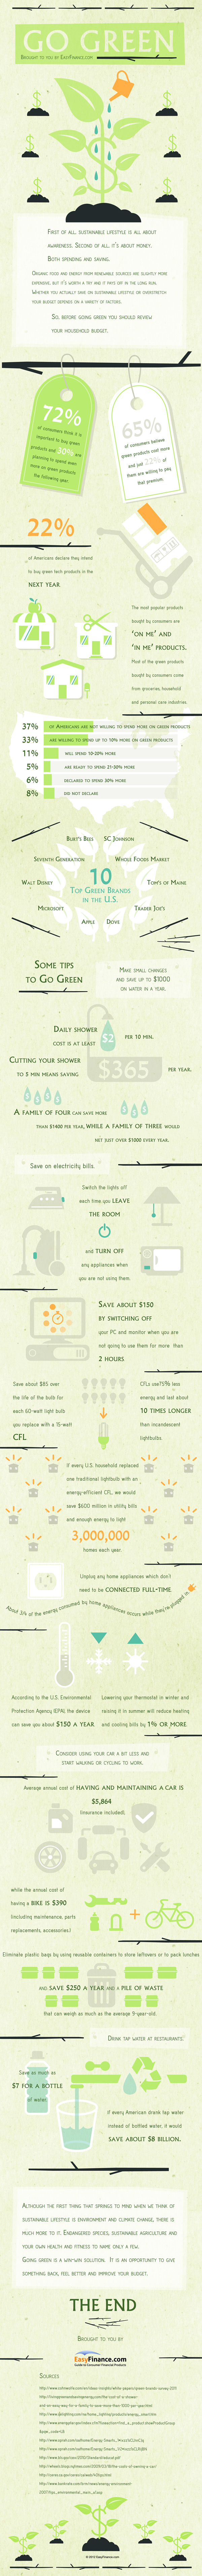 Go Green (Infographic) 